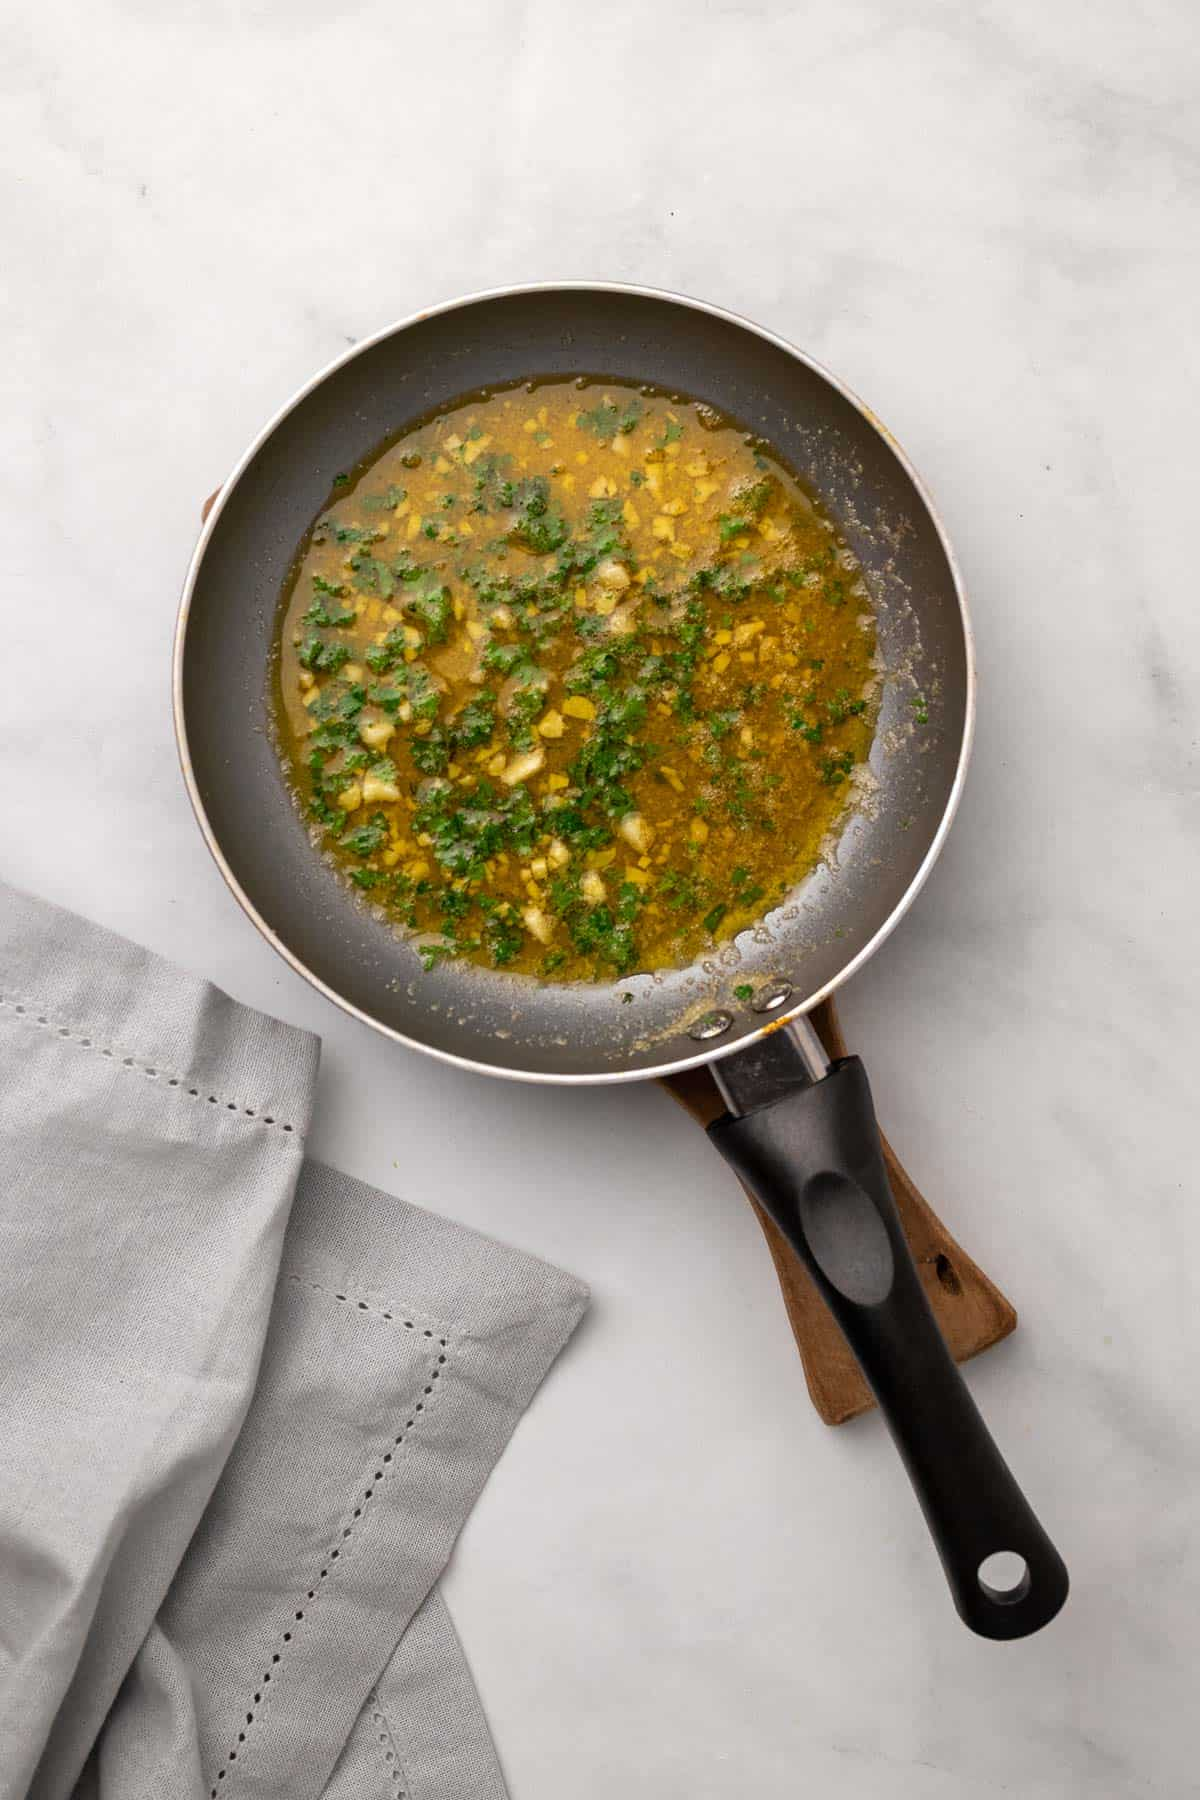 Garlic, butter, parmesan, and chopped parsley in a small saucepan, as seen from above